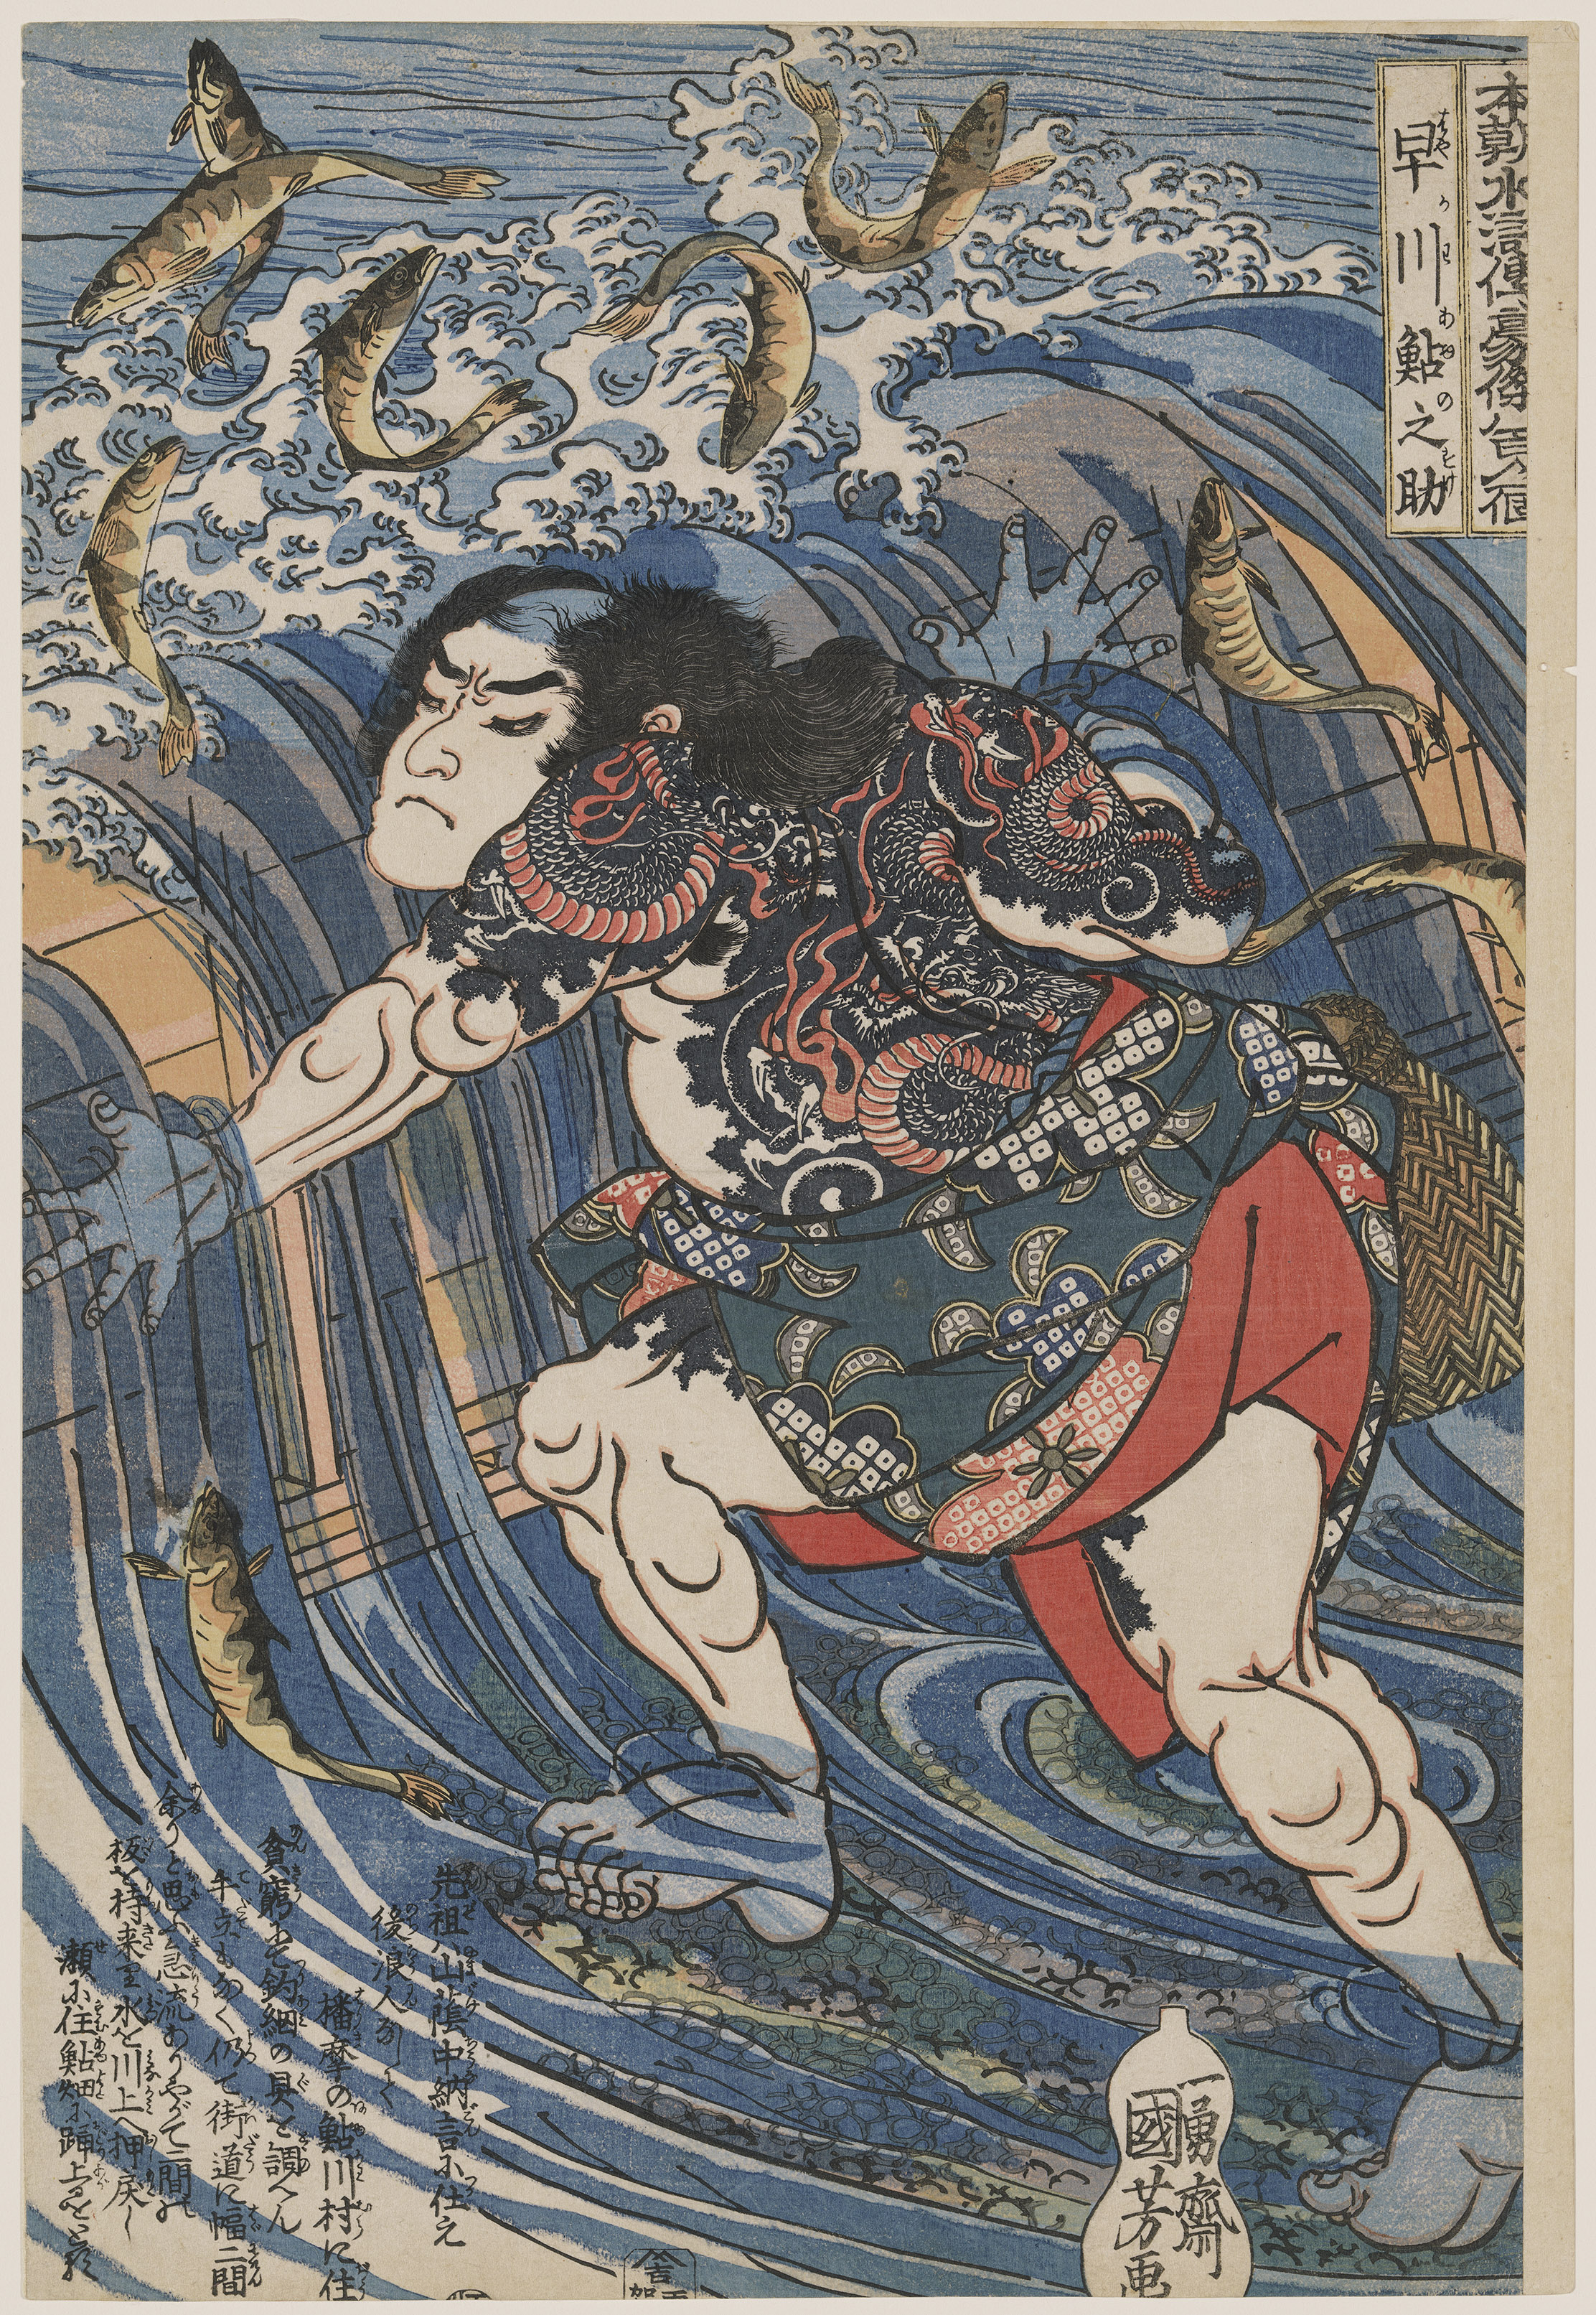 """Hayakawa Ayunosuke,"" from the series ""800 Hundred Heroes of the 